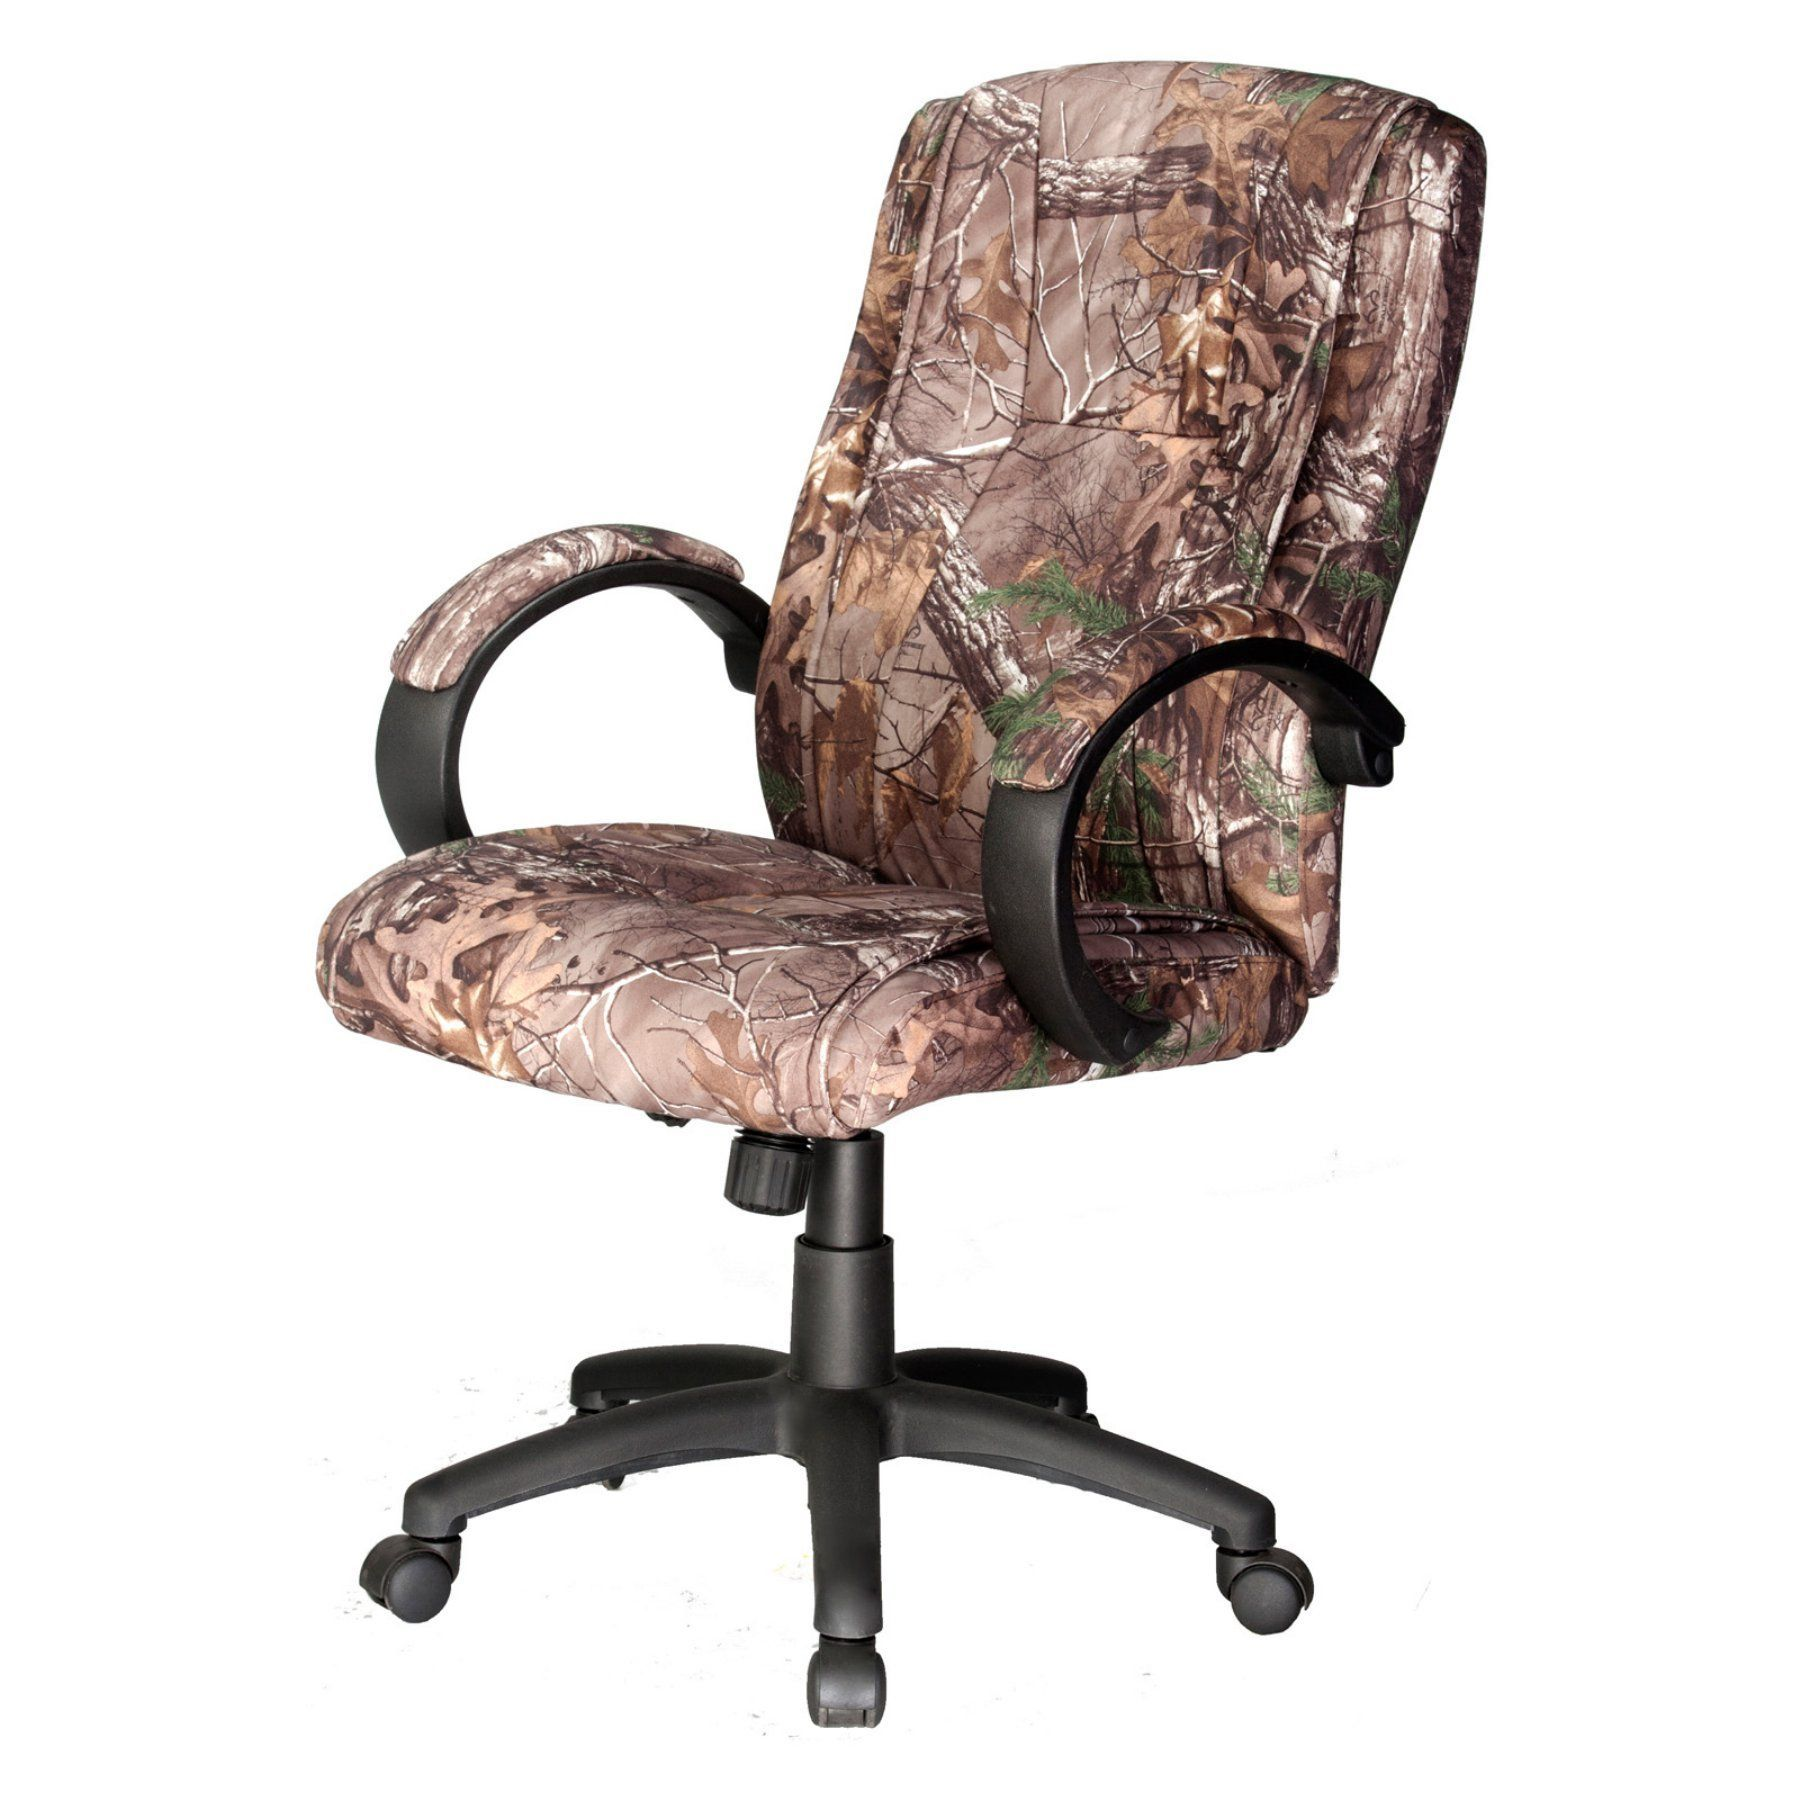 Comfort Products Executive Office Chair - Camouflage - 60 ...